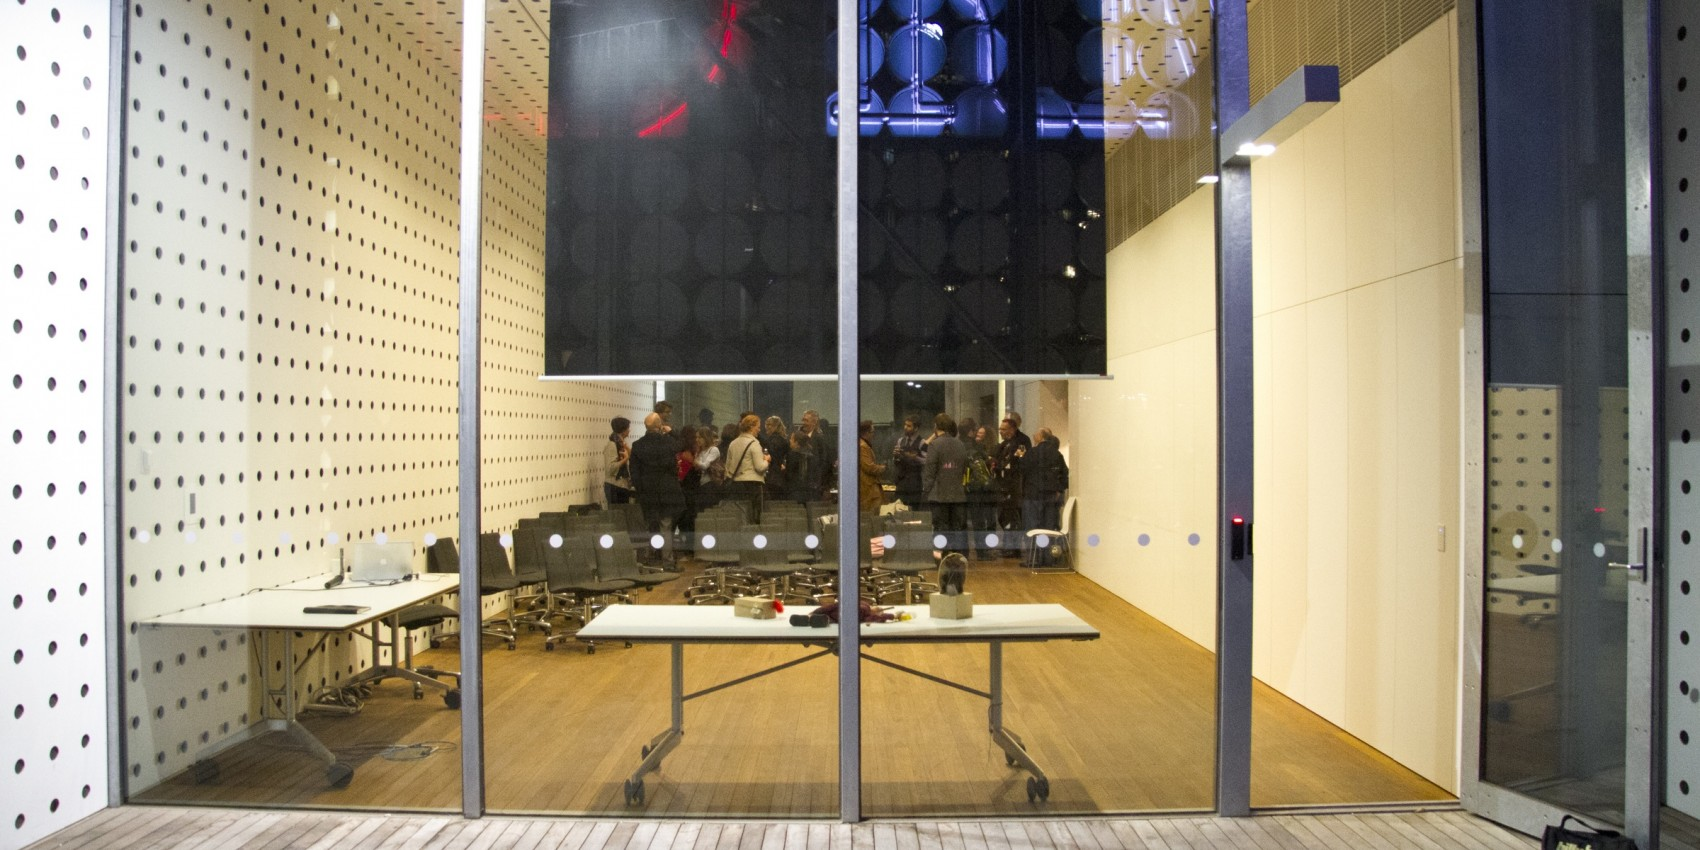 Looking through glass doors at a room where many people are gathered